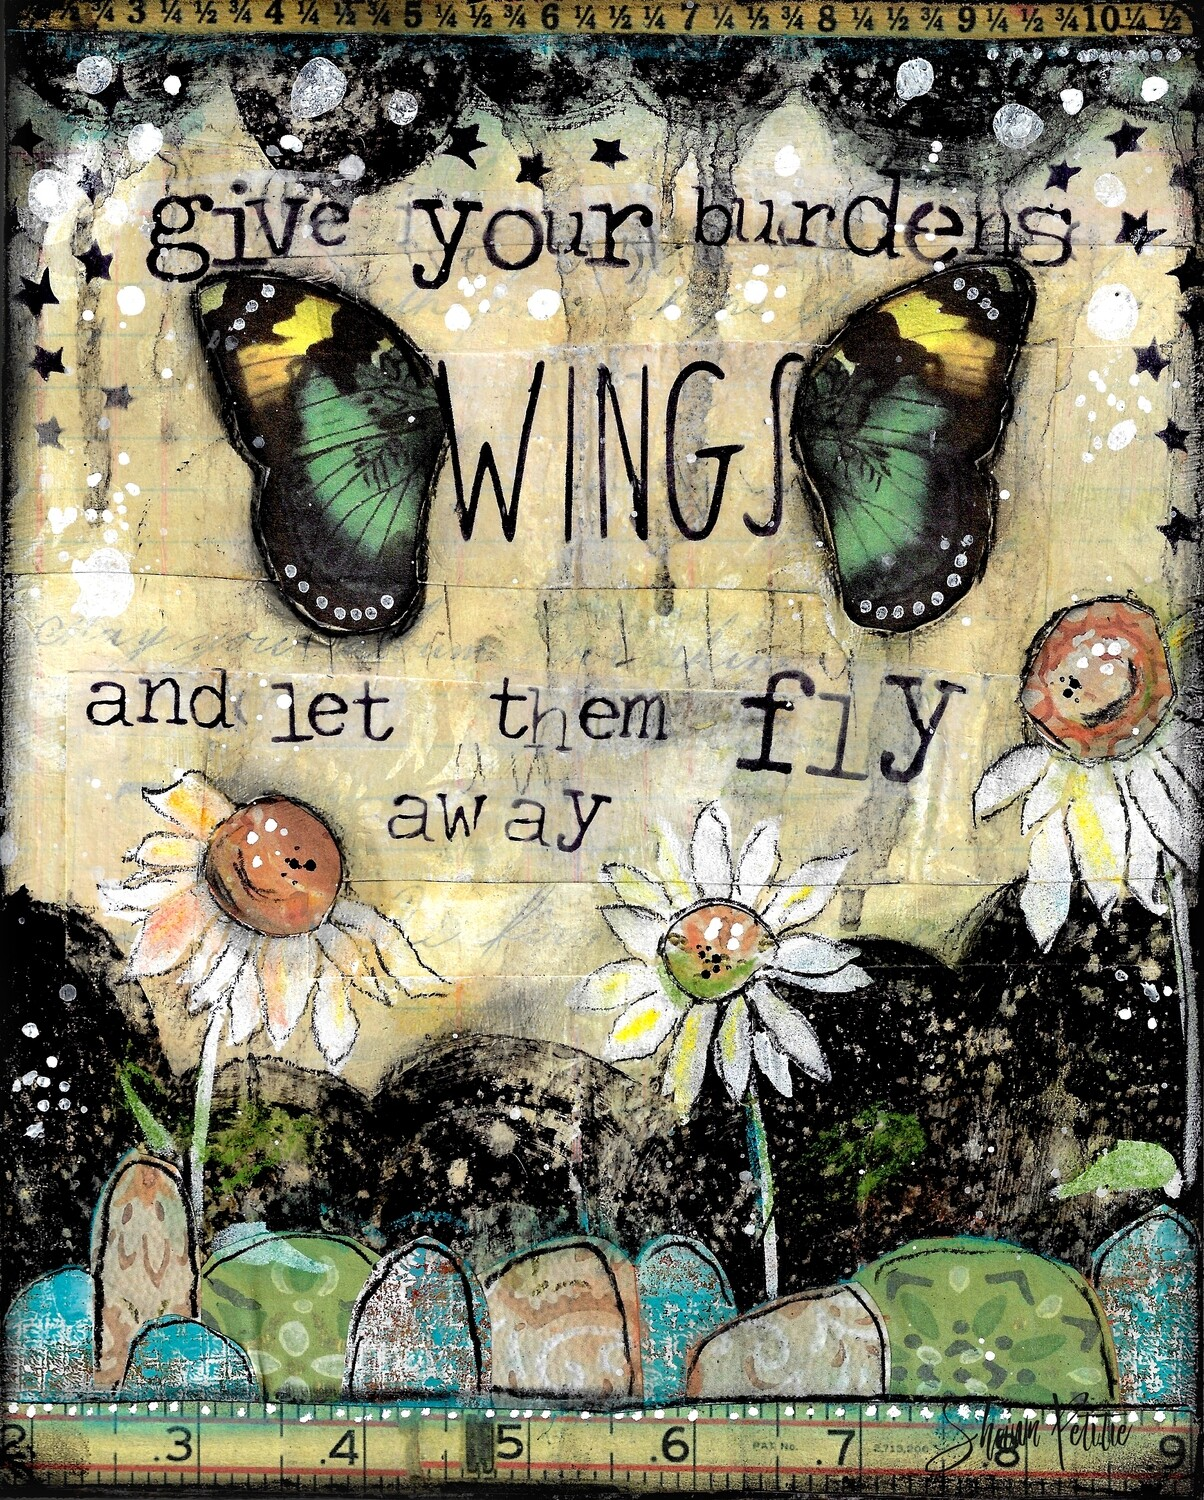 """Give your burdens wings"" Print on Wood 4x6 Overstock"